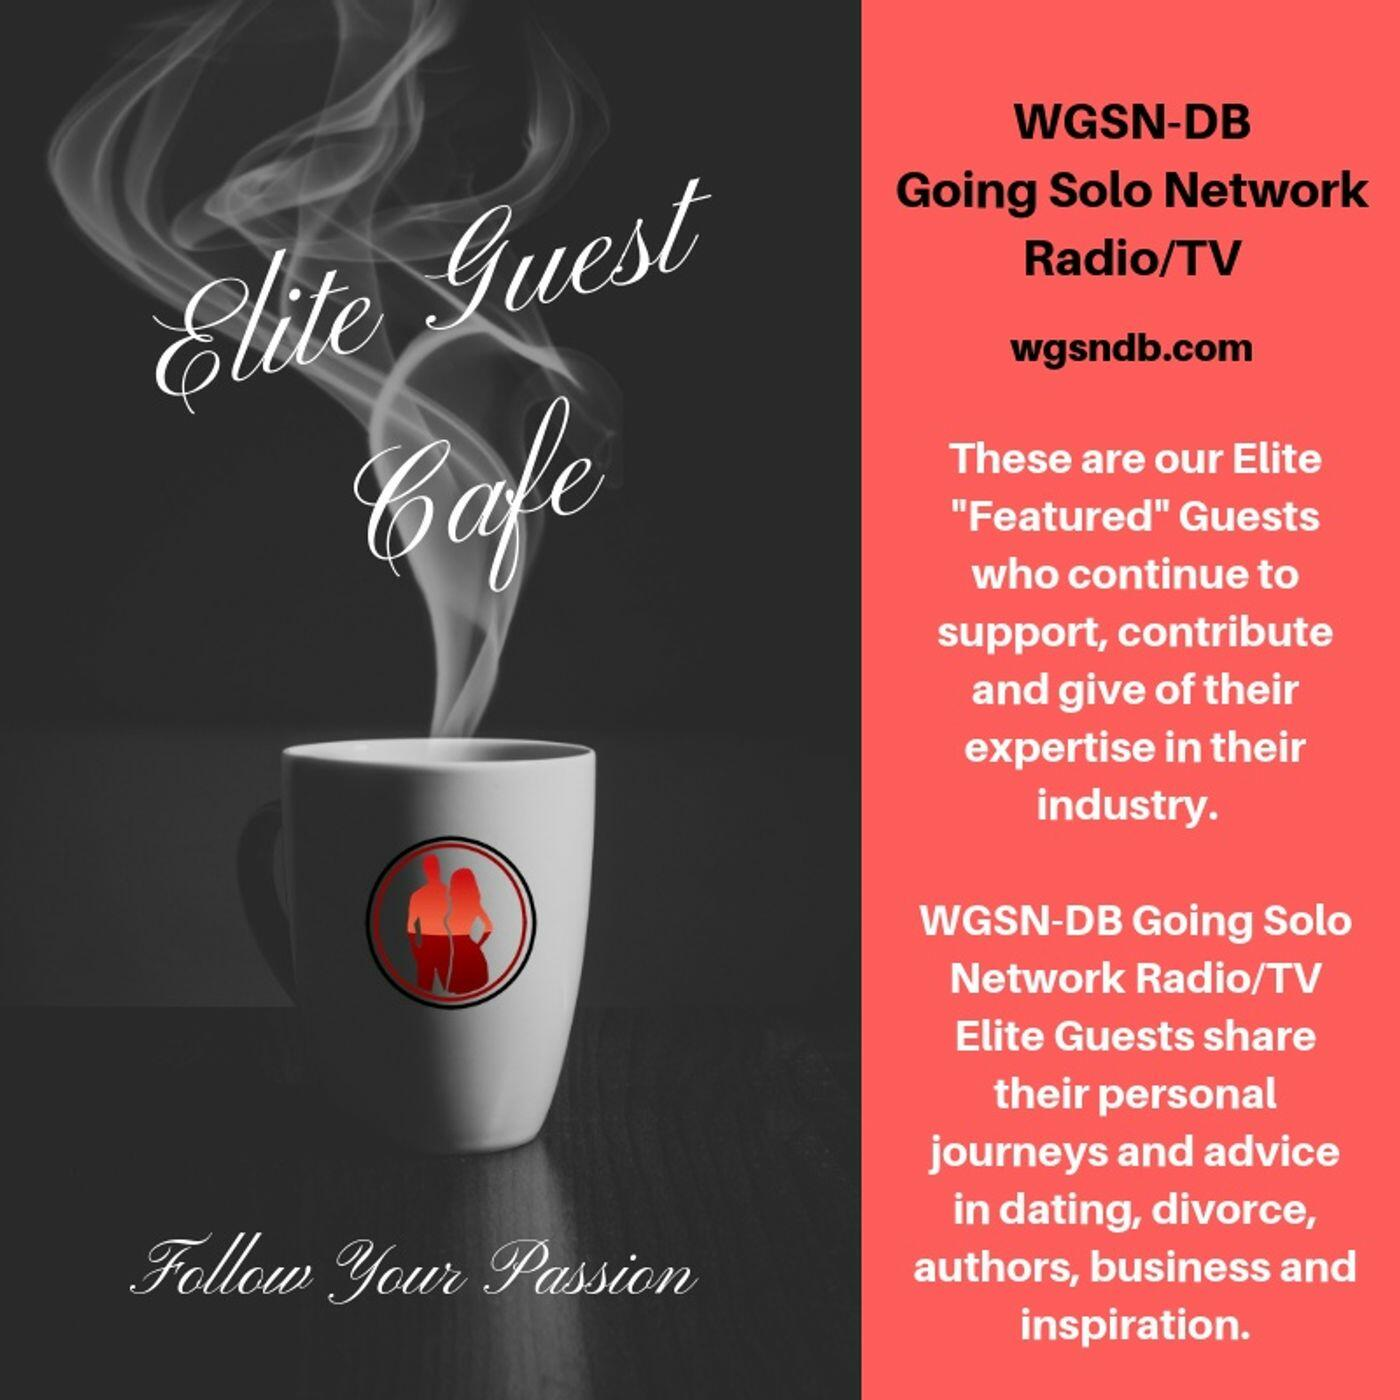 #1 WGSN-DB Going Solo Network Elite Guests